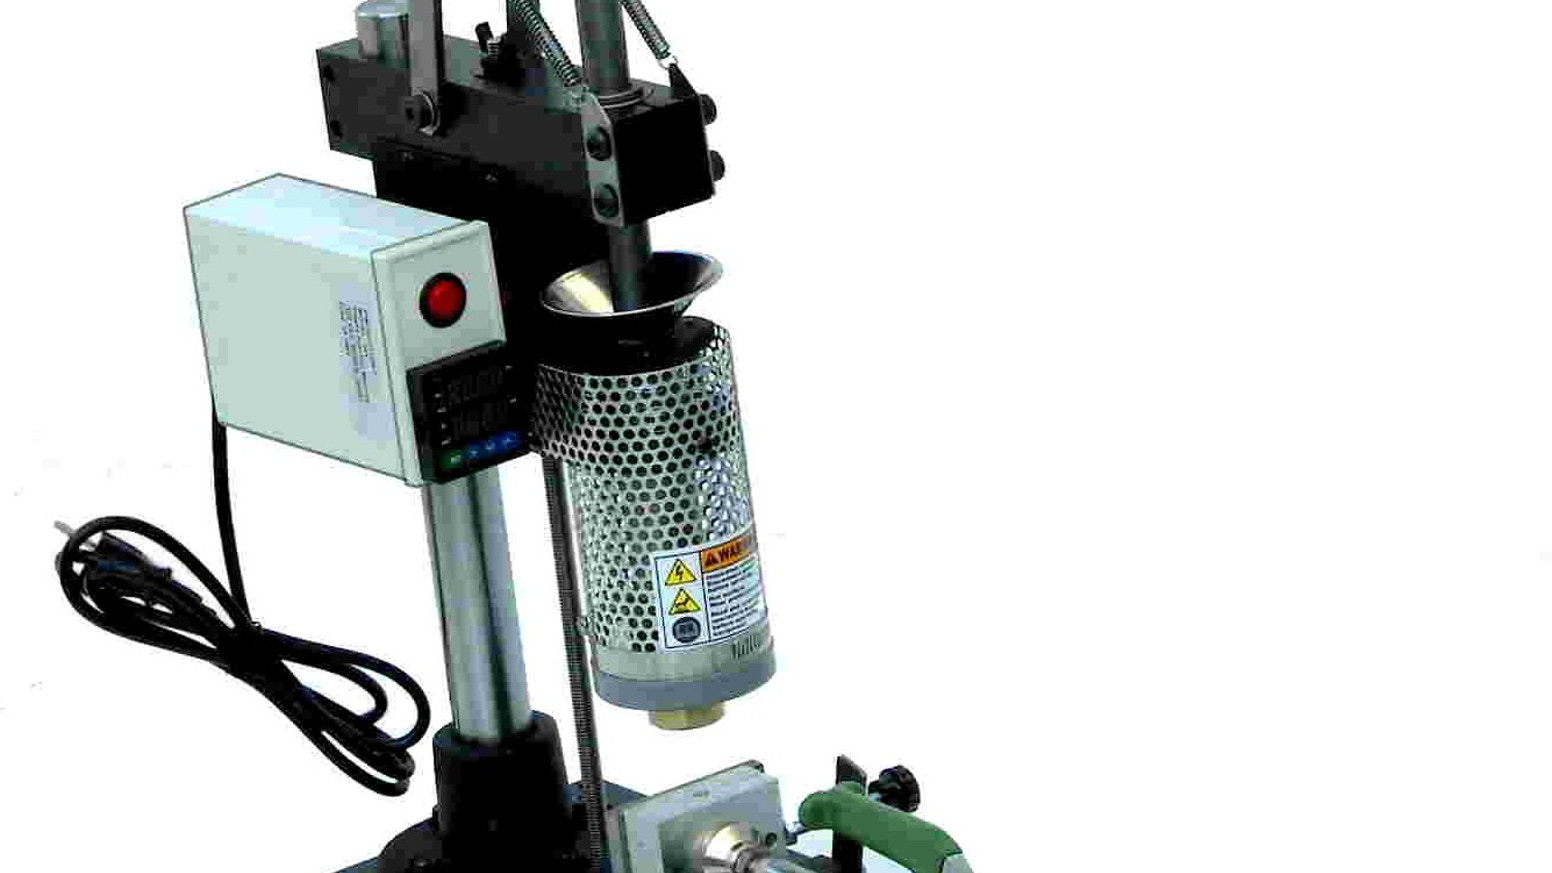 Bench Model Plastic Injection Machine by LNS Technologies — Kickstarter